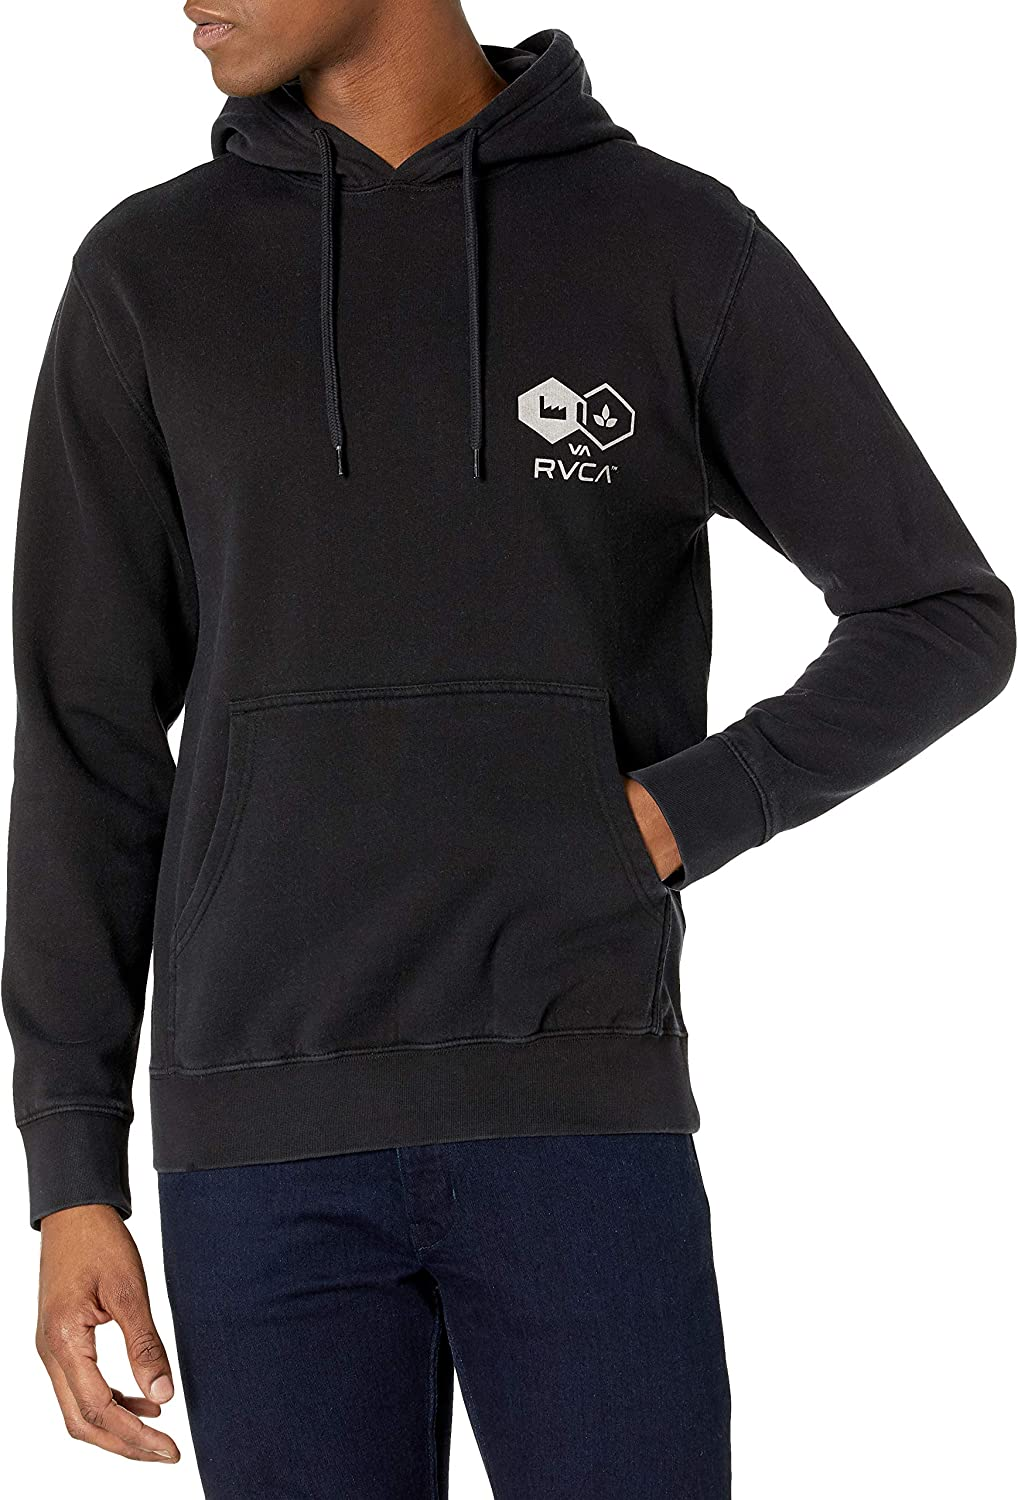 RVCA Credence Men's Maghurst Sweatshirt Fees free!! Hooded